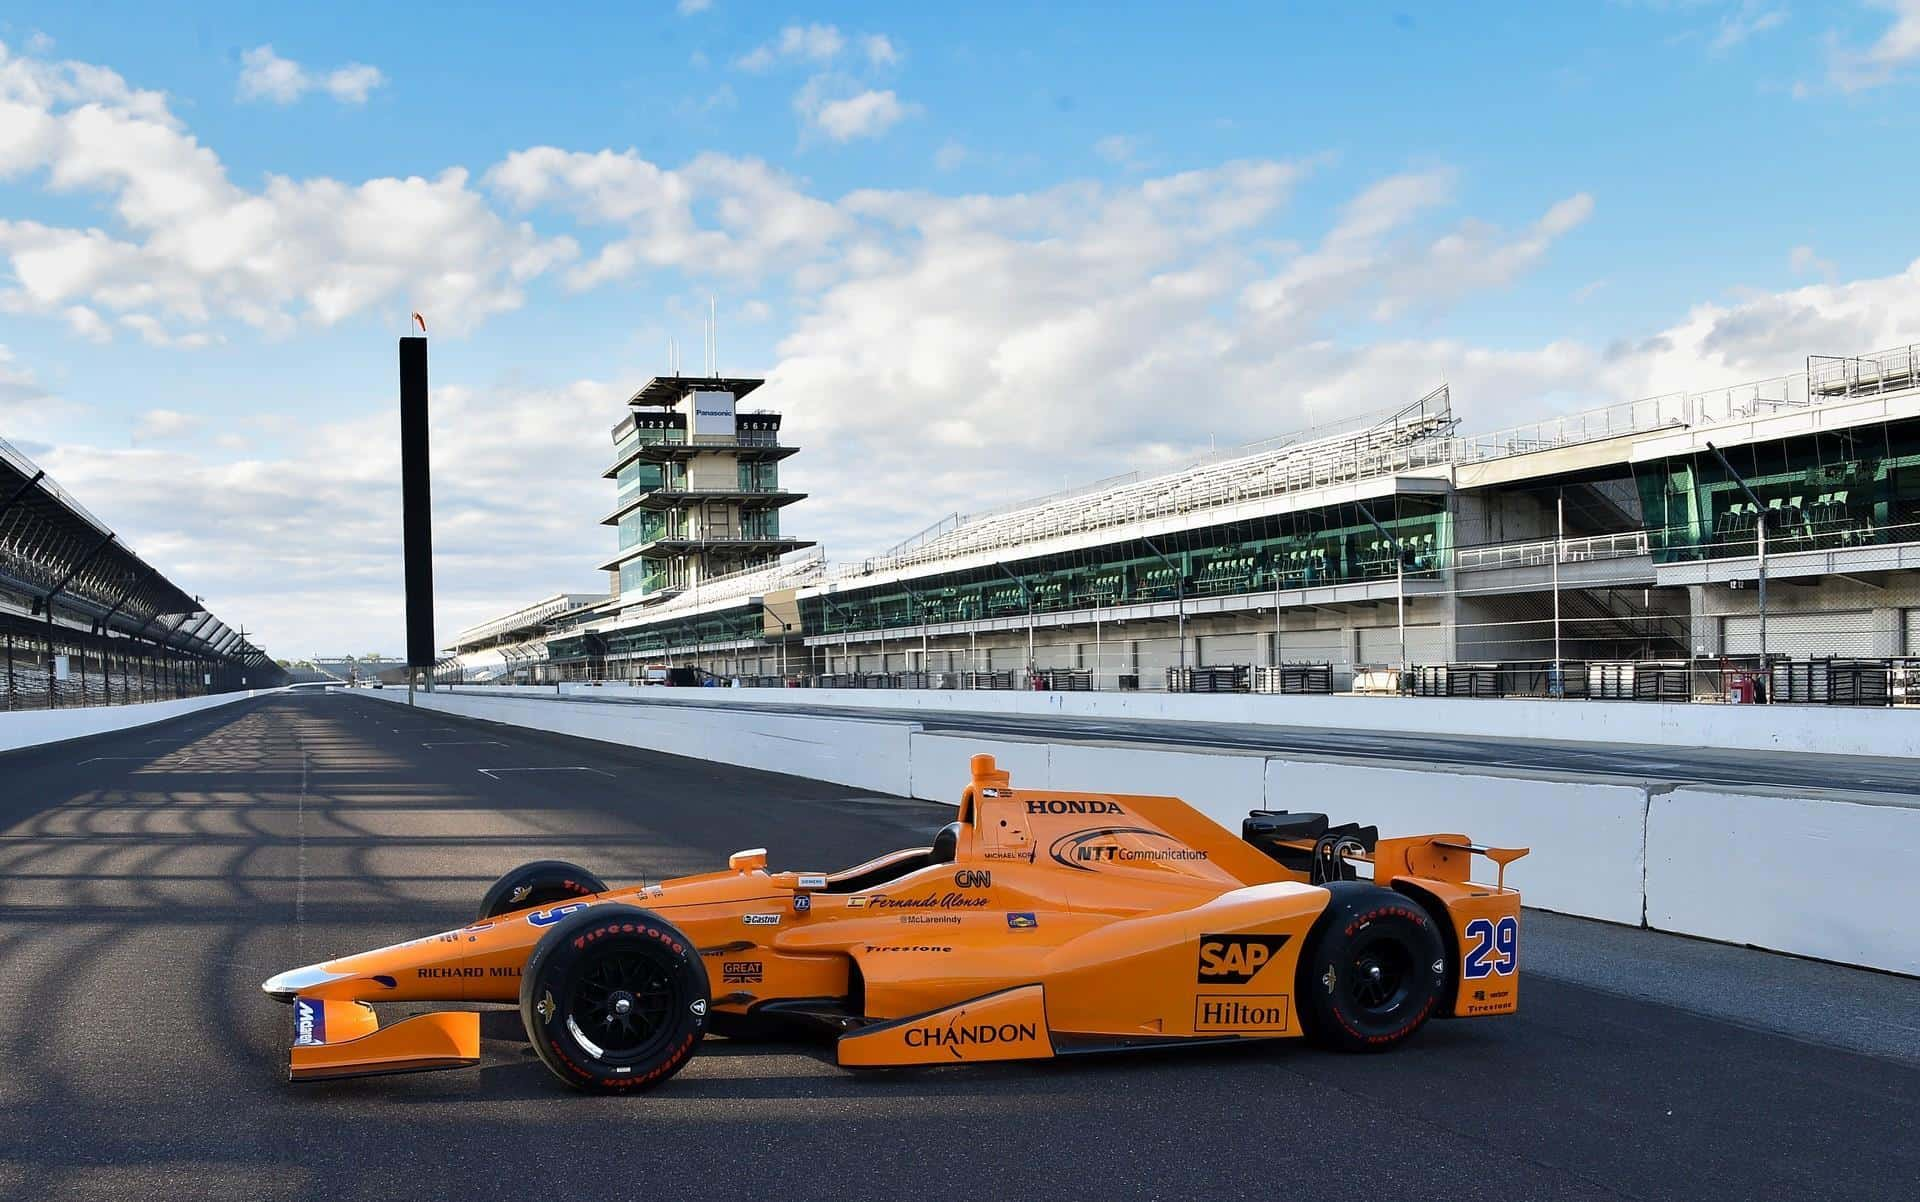 Andretti unveals photos of Alonso car for Indy 500